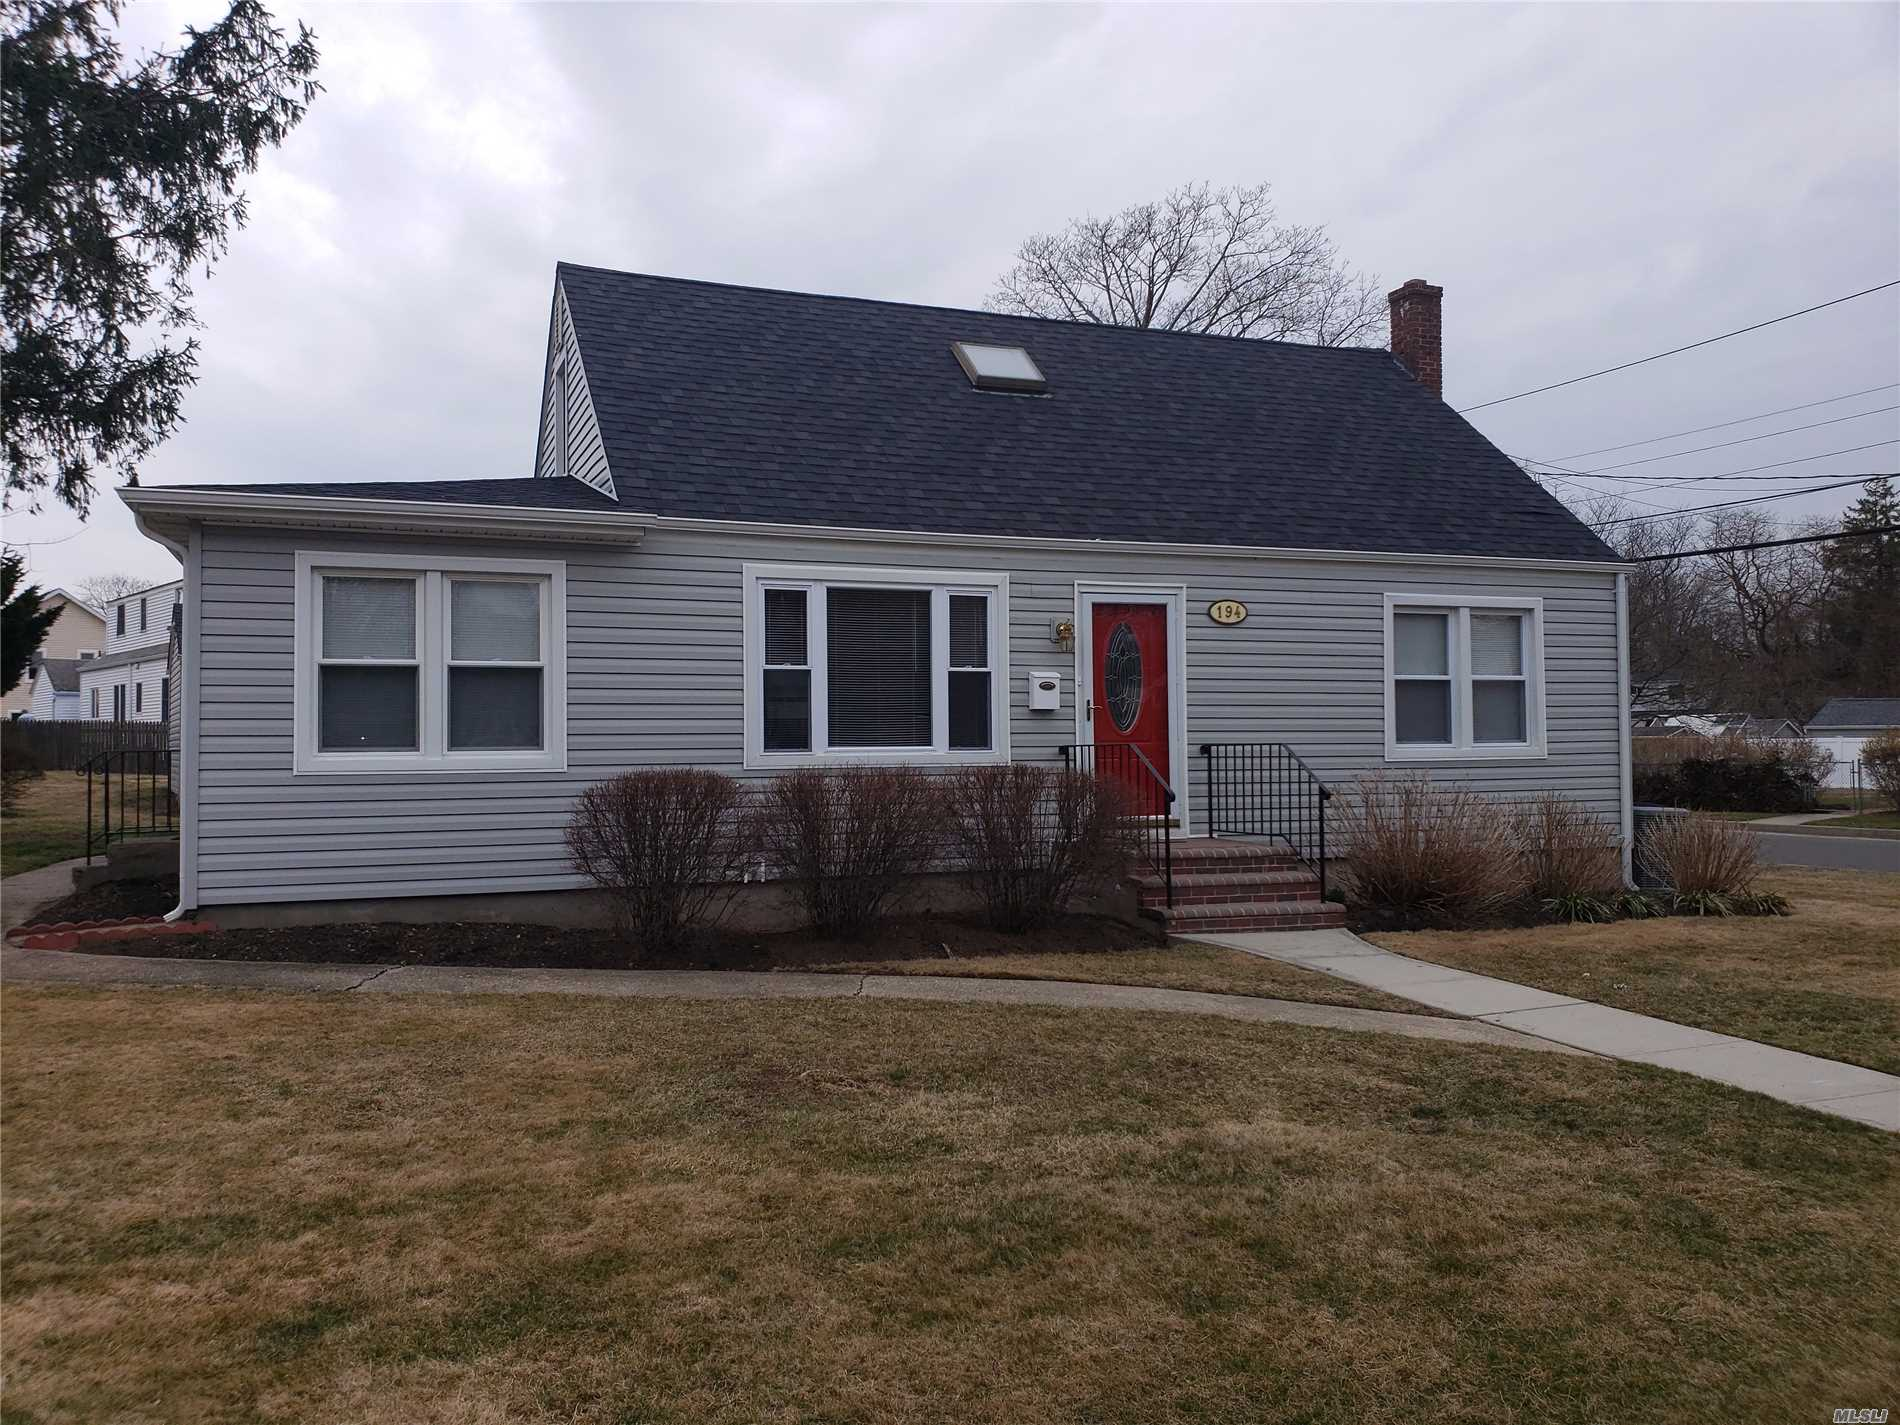 Beautiful Cape, 4 bedrooms, updated roof, windows, kitchen, CAC, Heating system, hardwood floors, completely painted, detached garage, close to park and play grounds.